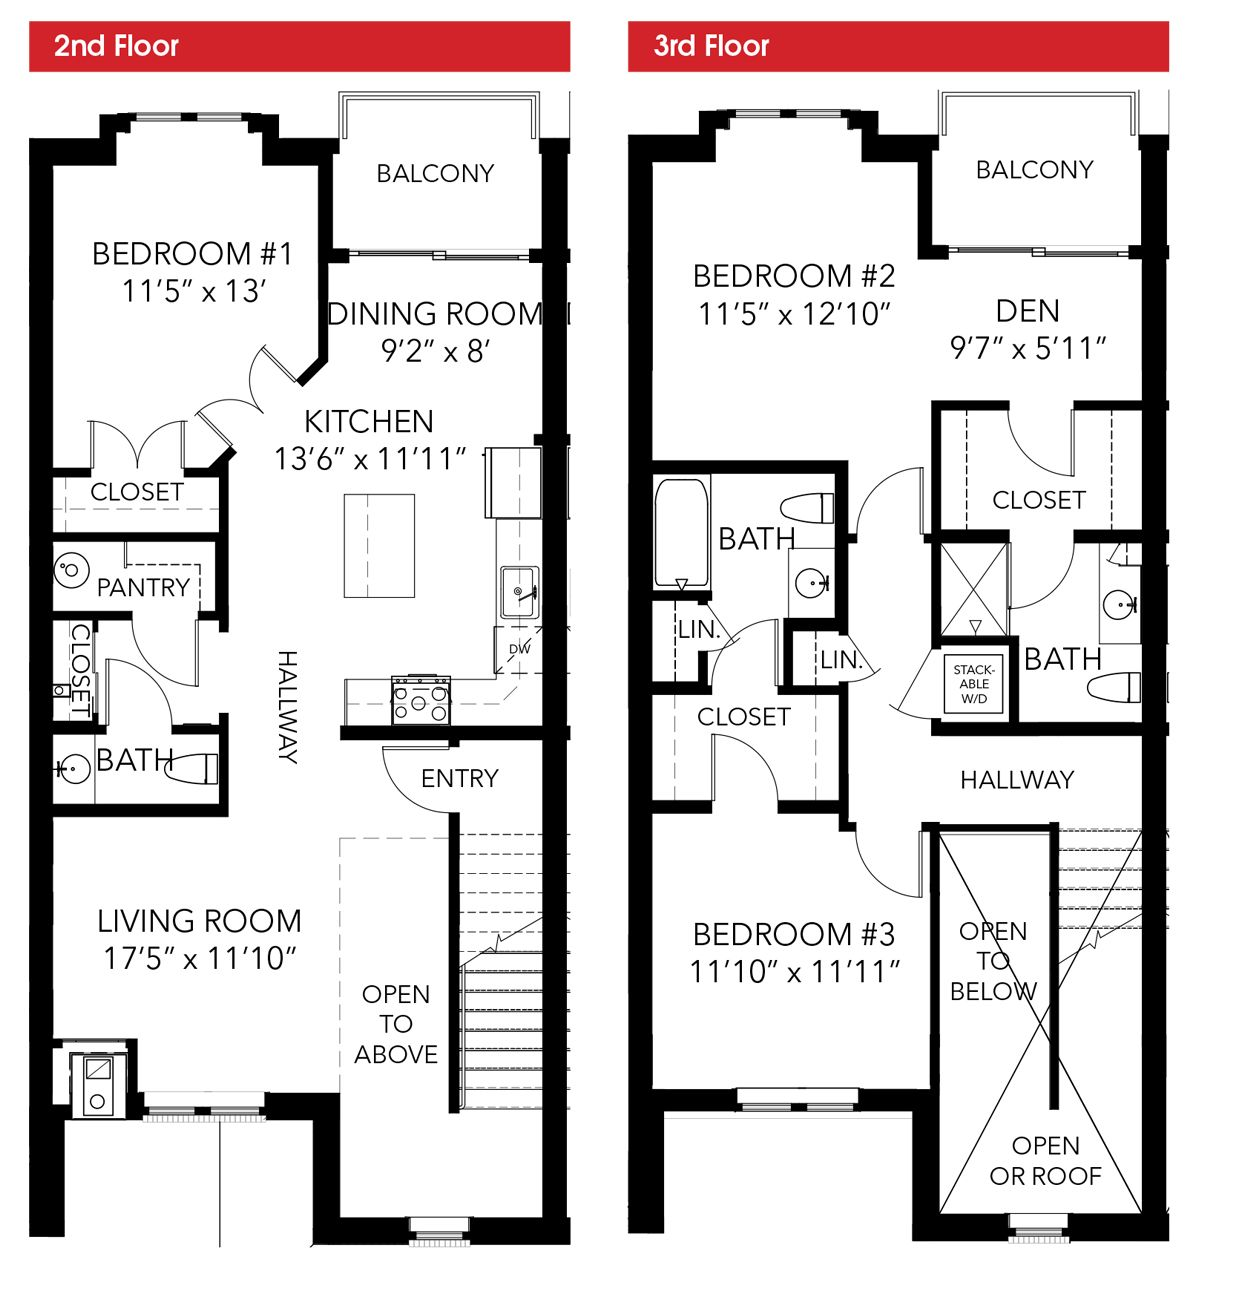 Oakbourne floor plan 3 bedroom 2 story leed certified for 2 bedroom townhouse plans